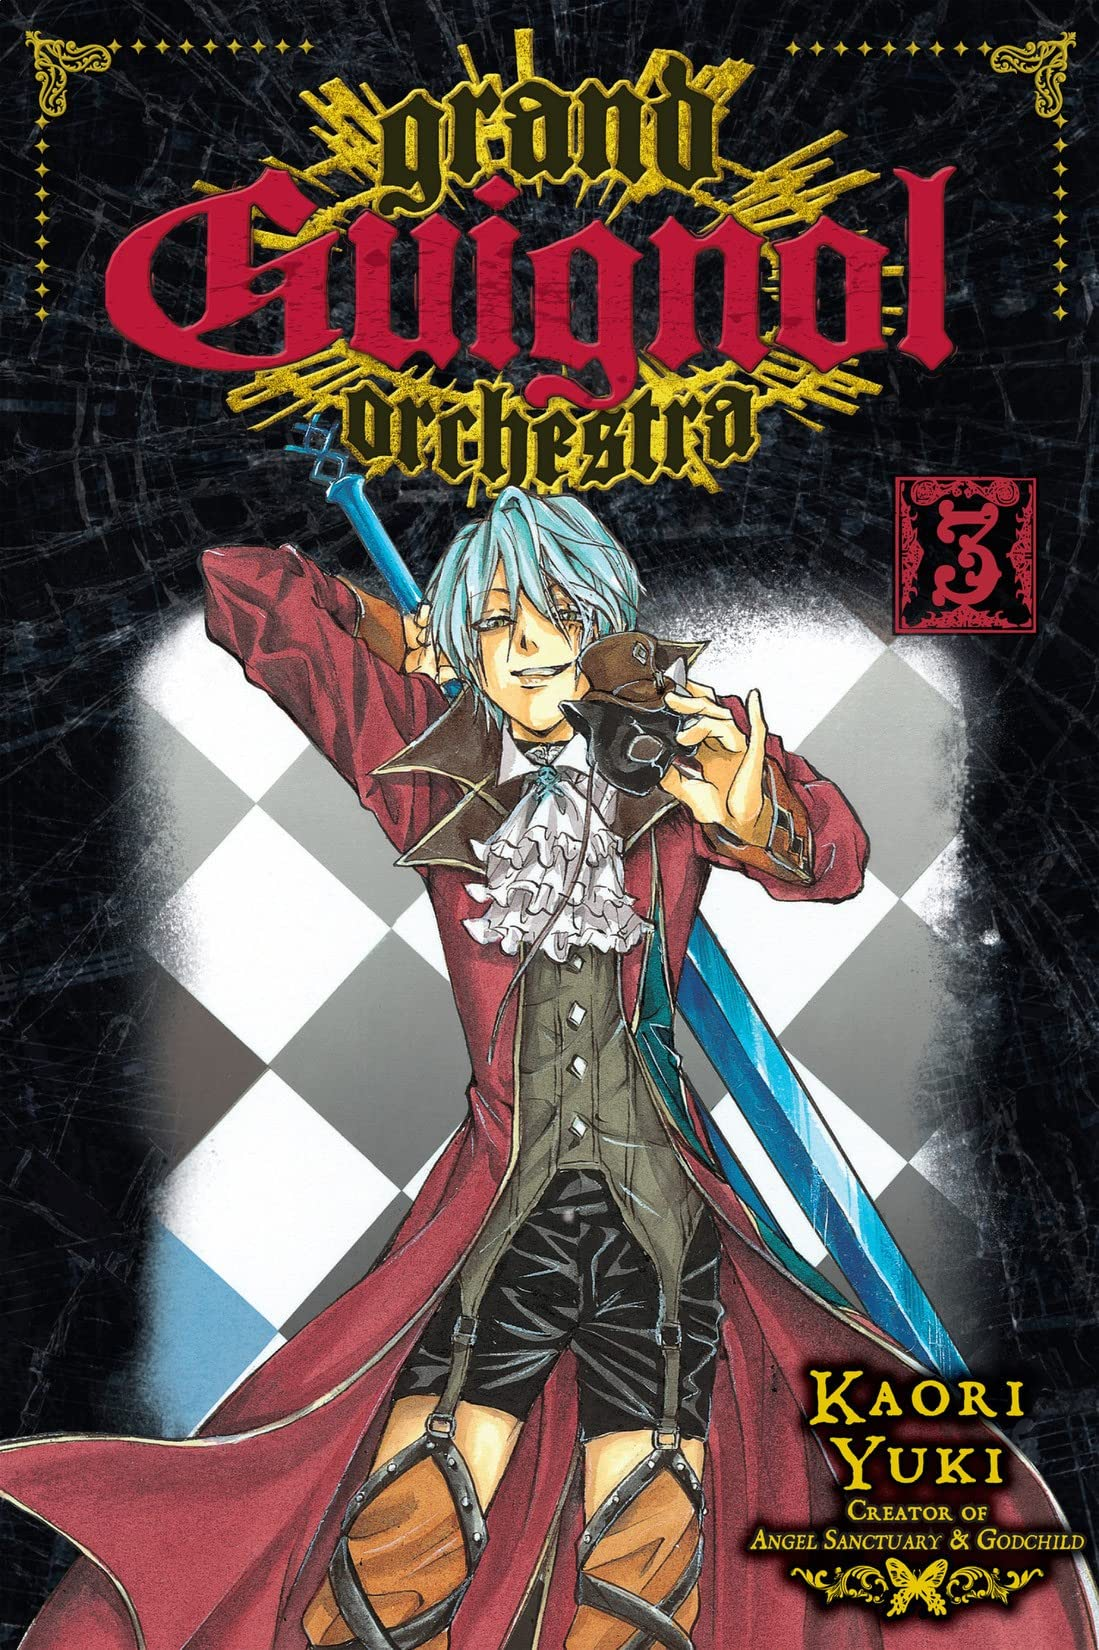 Grand Guignol Orchestra Vol. 3